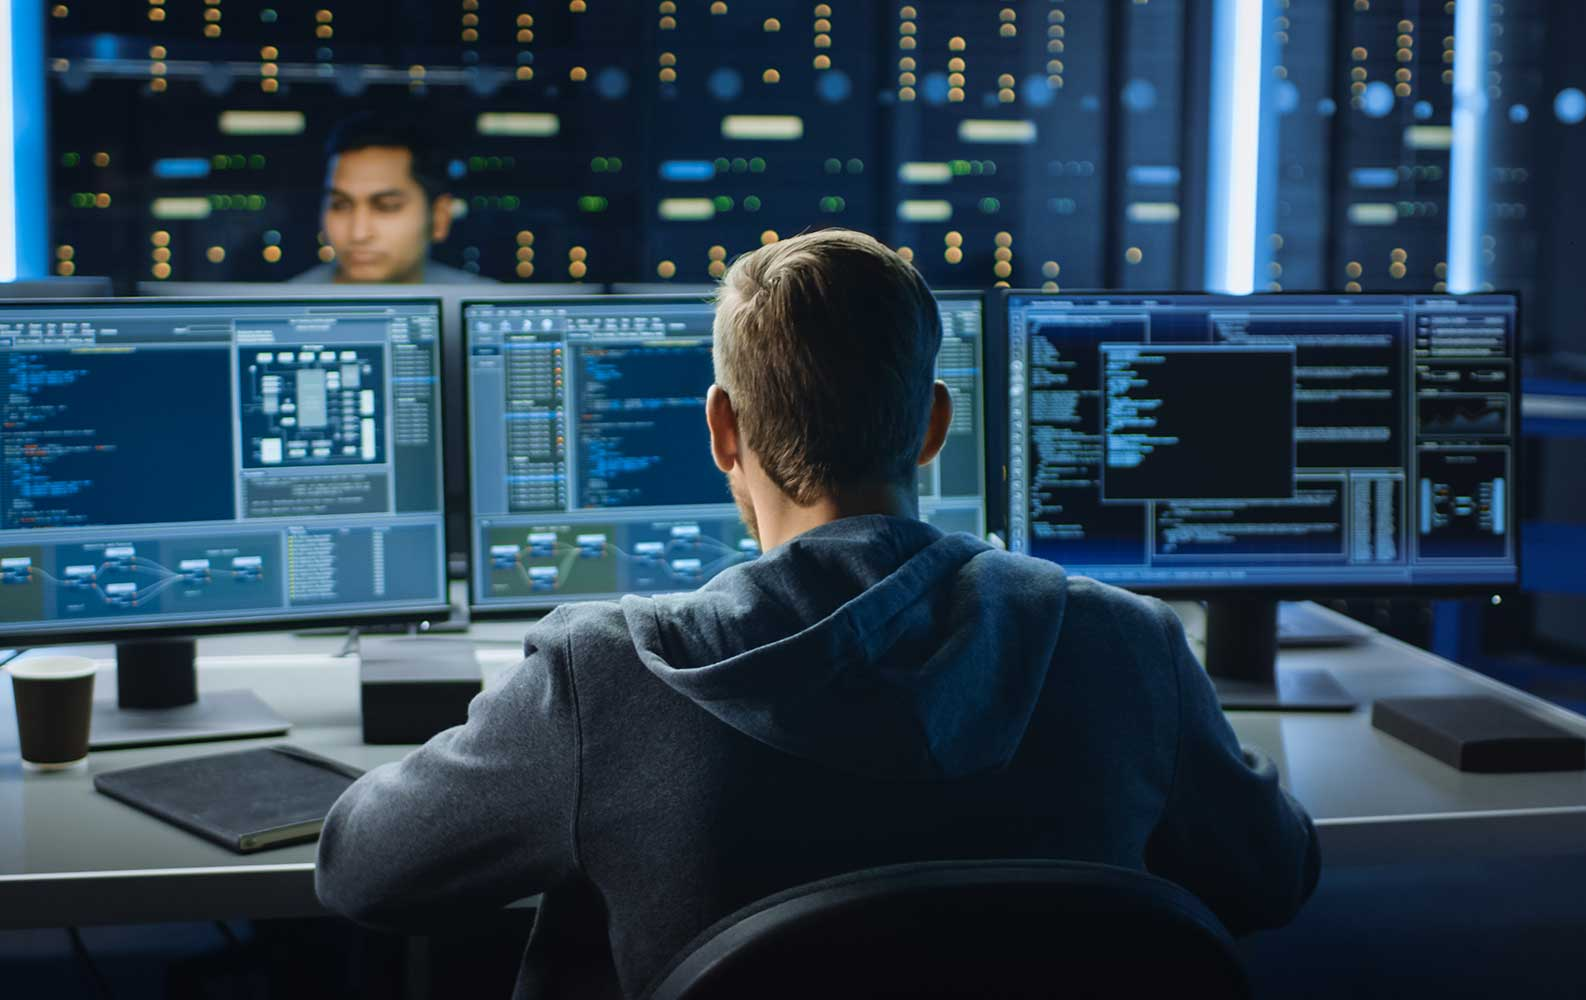 IT Security Case Study: One Company, Two Ransomware Attacks